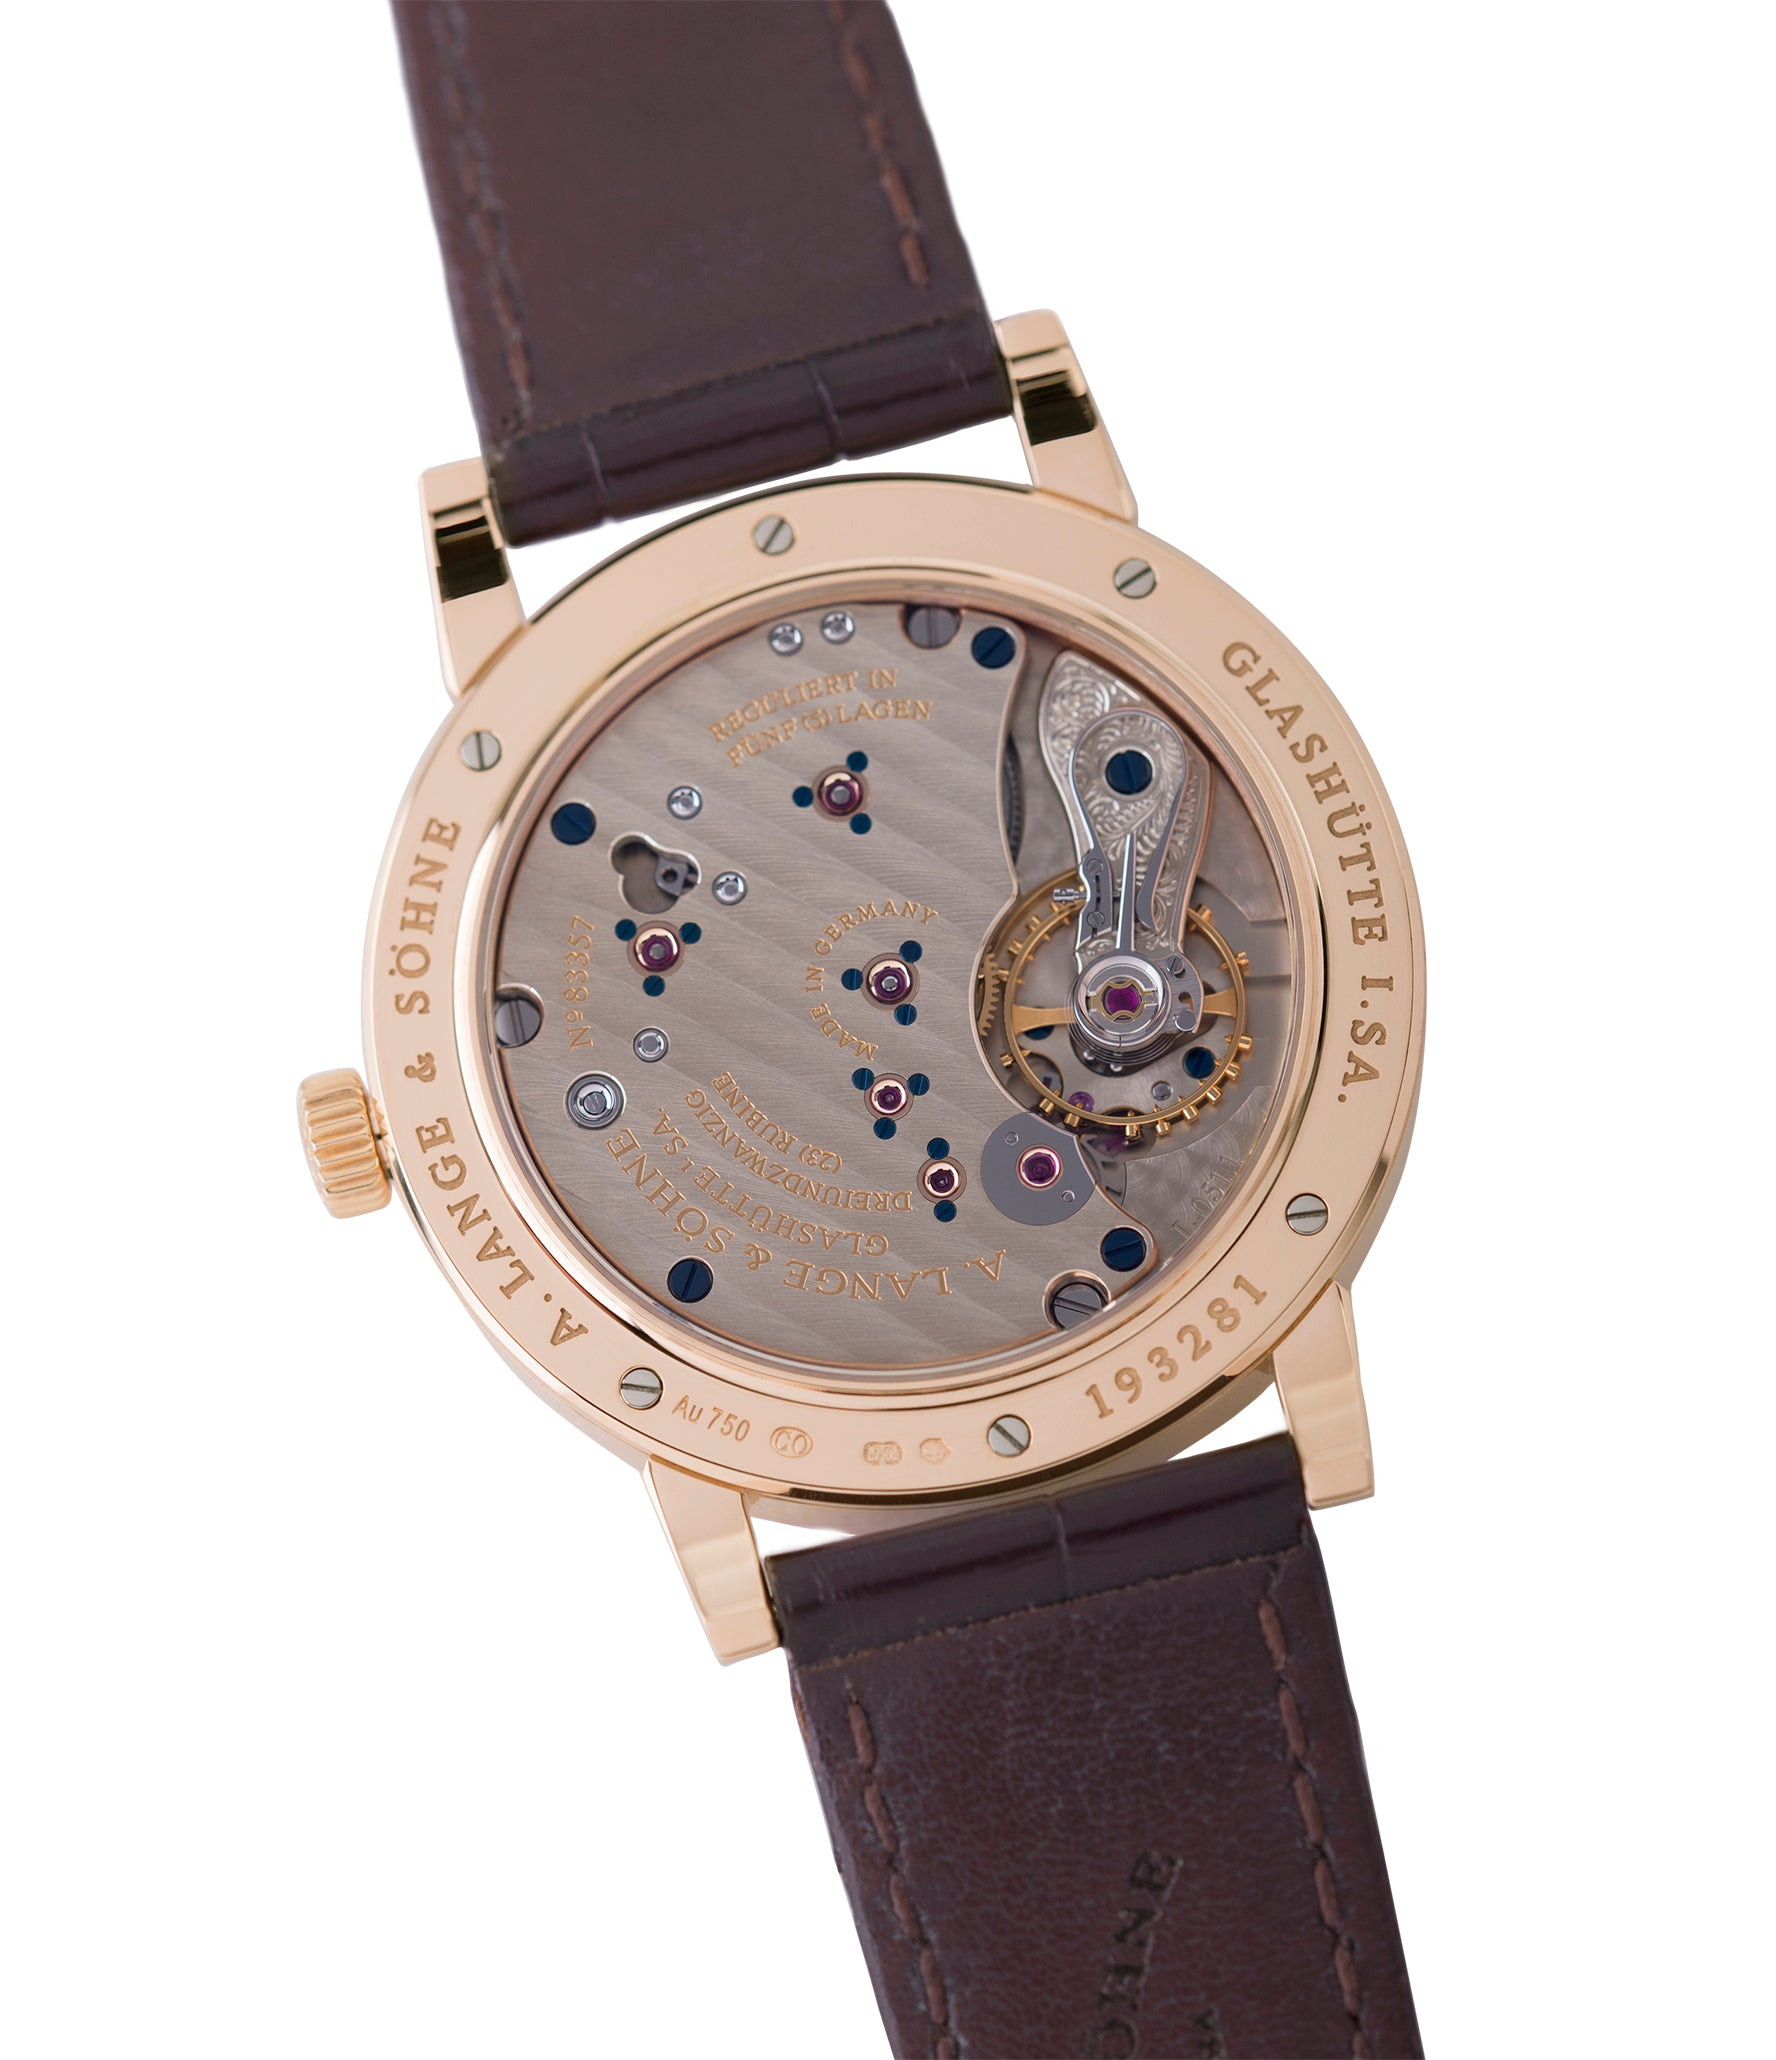 Cal L051.1 A. Lange & Sohne 1815 233.032 rose gold dress watch for sale online at A Collected Man London Uk specialist of preowned luxury watches